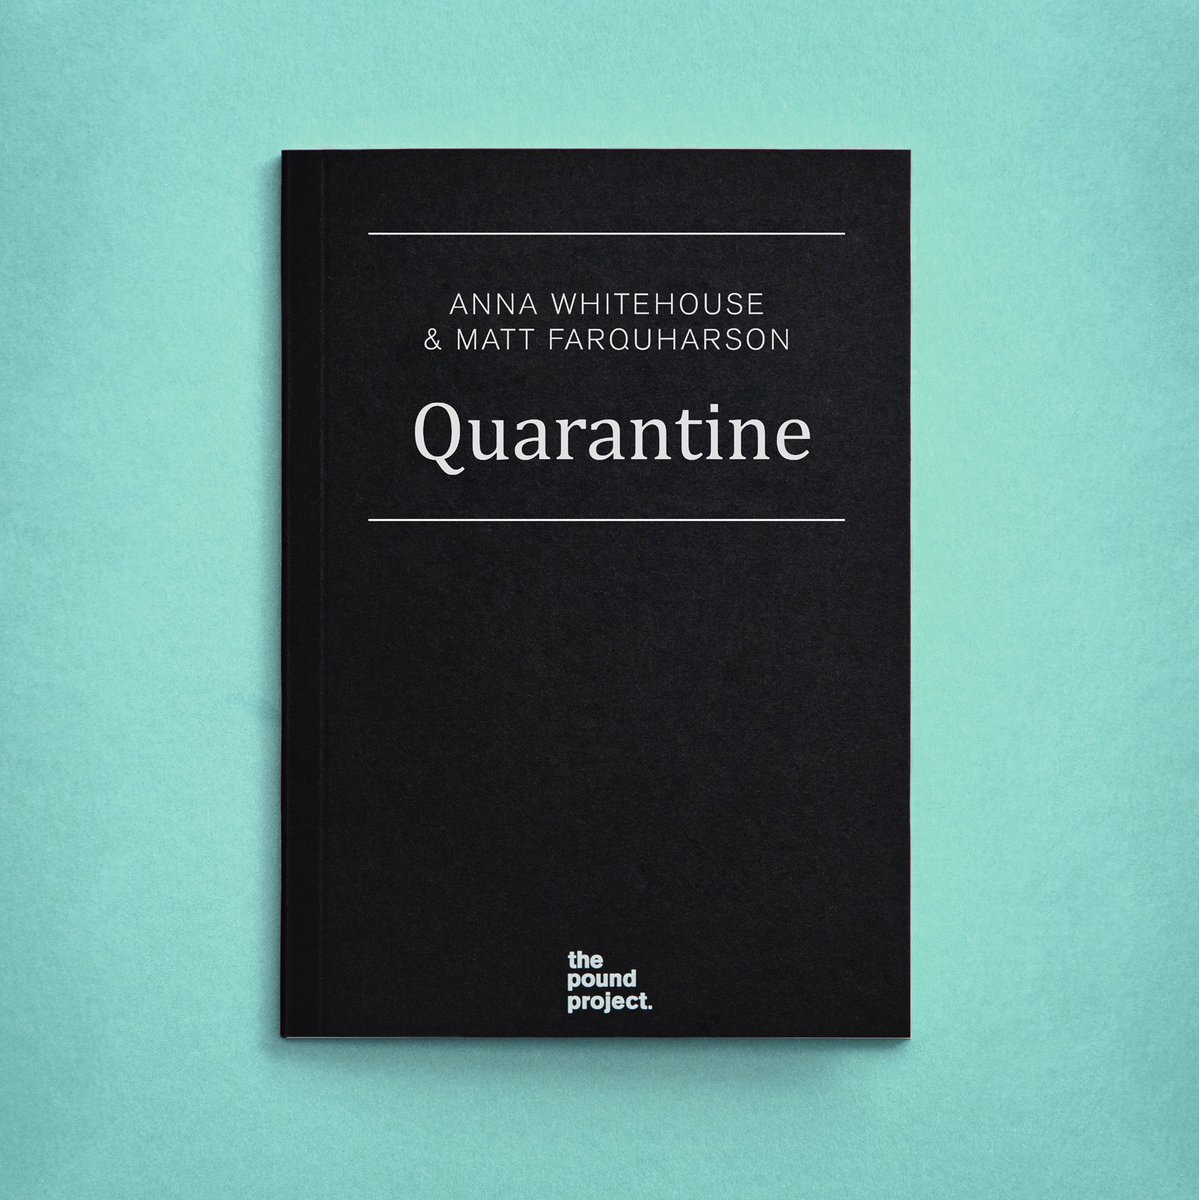 It's here. Our first piece of fiction. It's called 'Quarantine' and it's a darkly comedic story about living and breaking together in lockdown. It's £1 through @_pound_project and limited edition copies are available here: https://t.co/uLwktOPu9D https://t.co/jfJA58p3ZJ